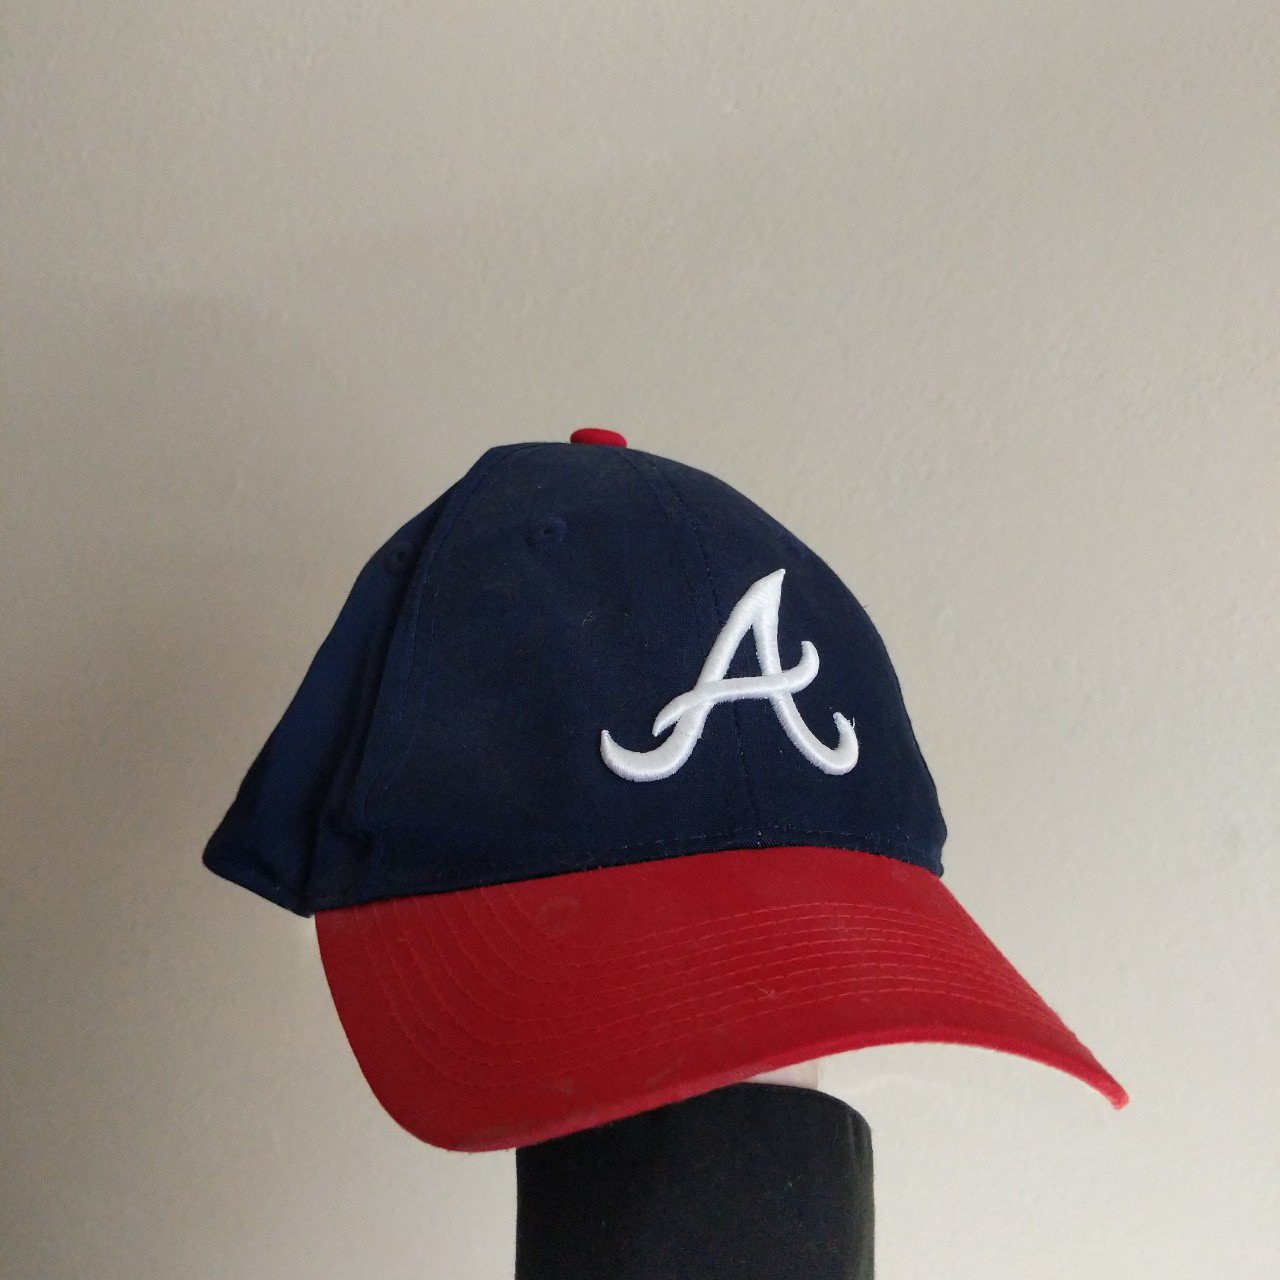 Atlanta braves dad hat - Depop 1c050d483ab